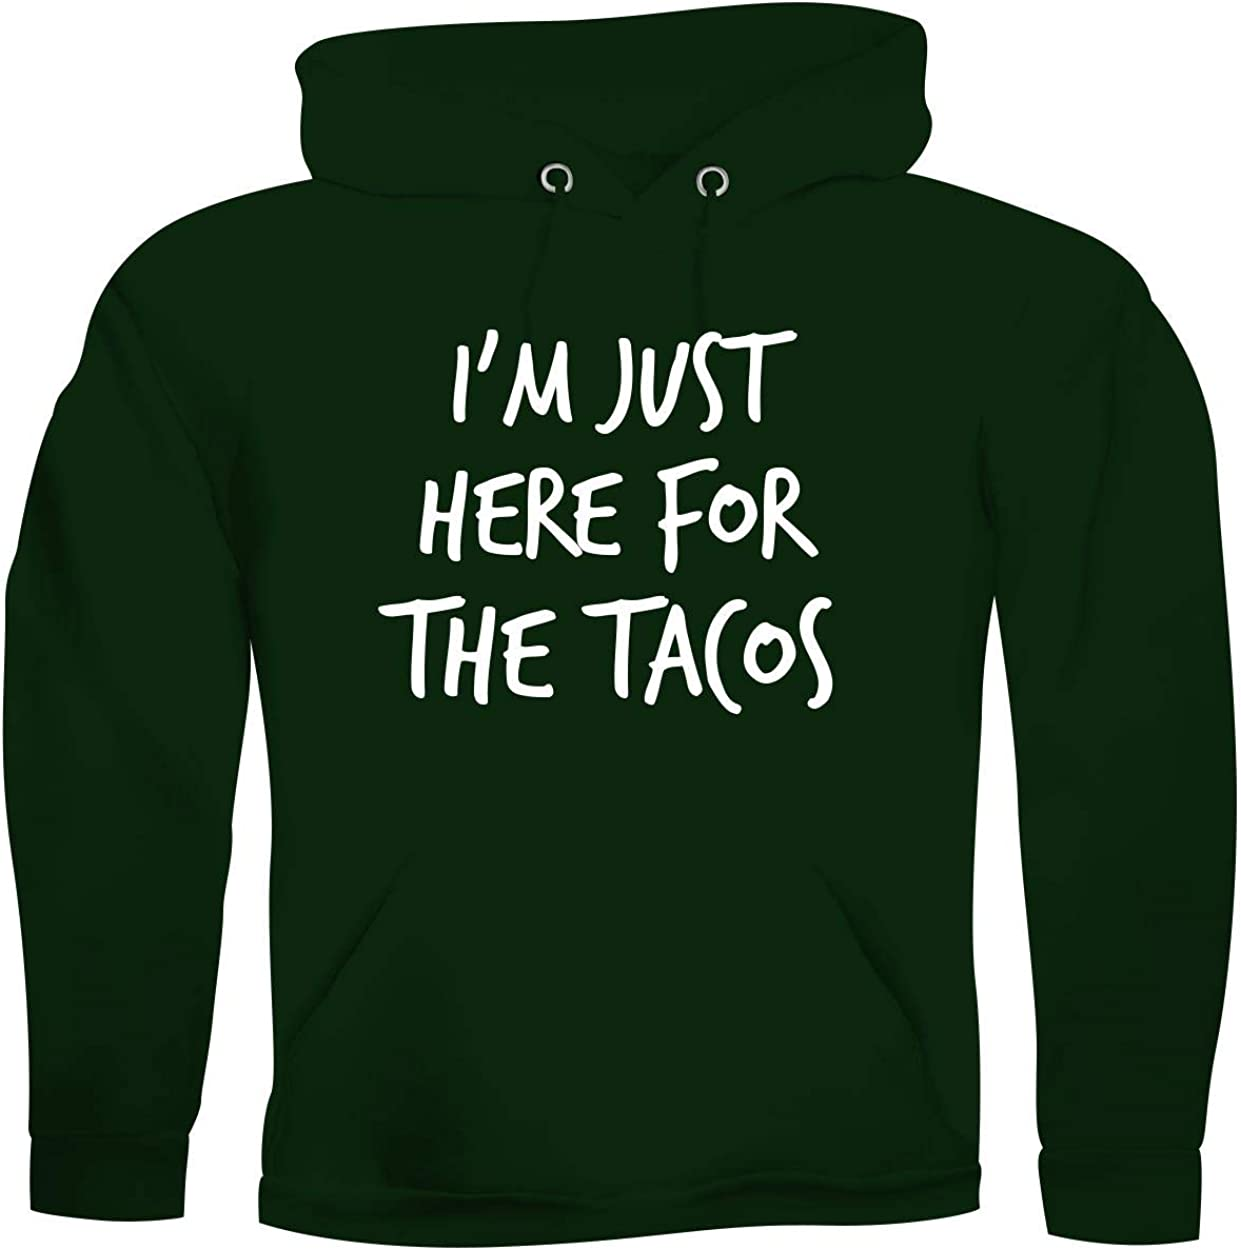 I'm Just Here For The Tacos - Adult Sweatshirt Hoodie